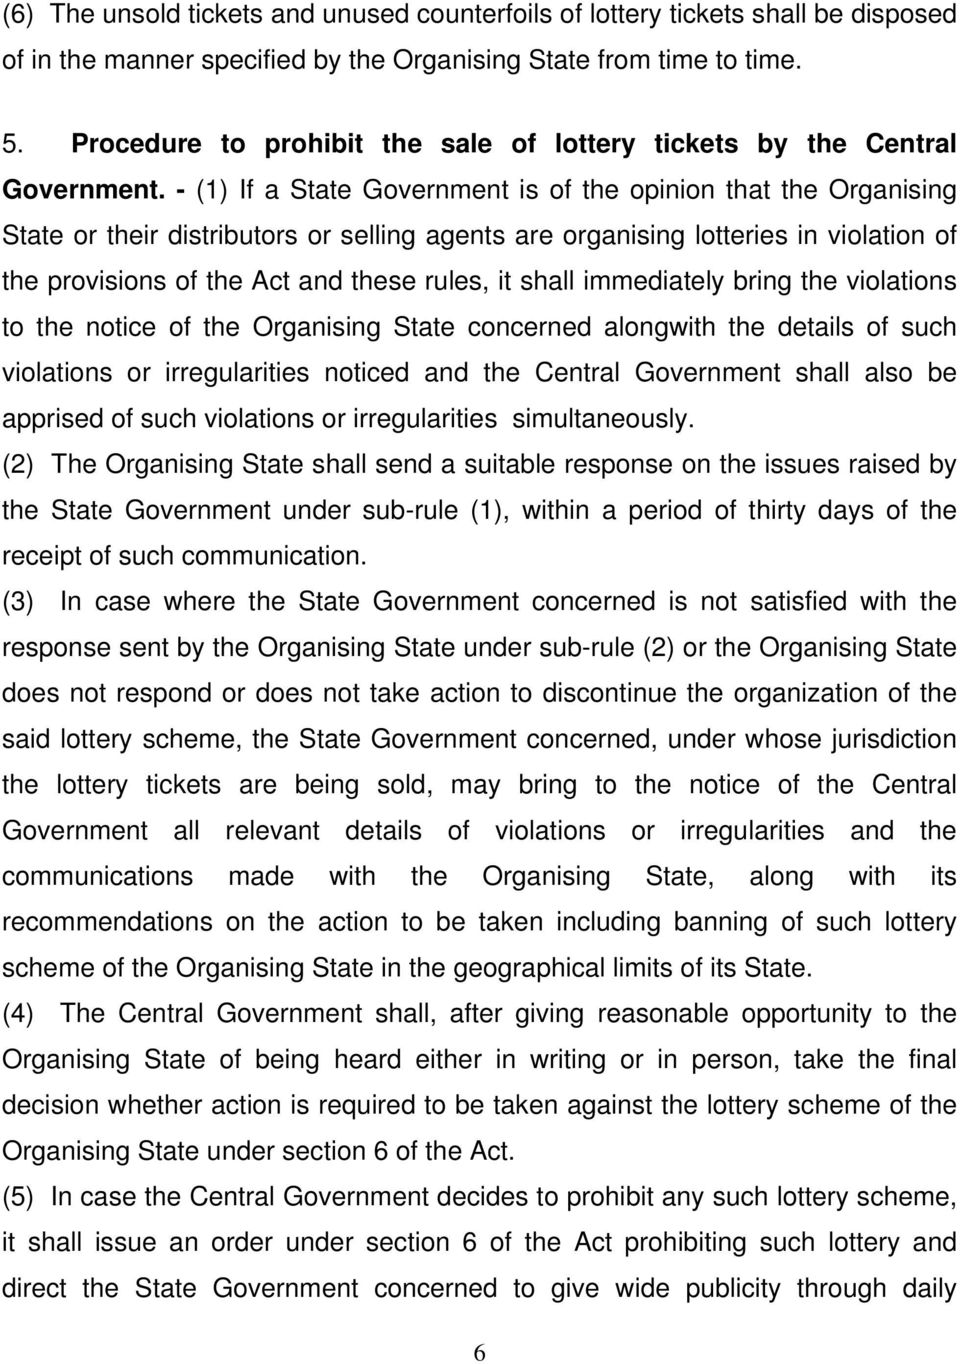 - (1) If a State Government is of the opinion that the Organising State or their distributors or selling agents are organising lotteries in violation of the provisions of the Act and these rules, it